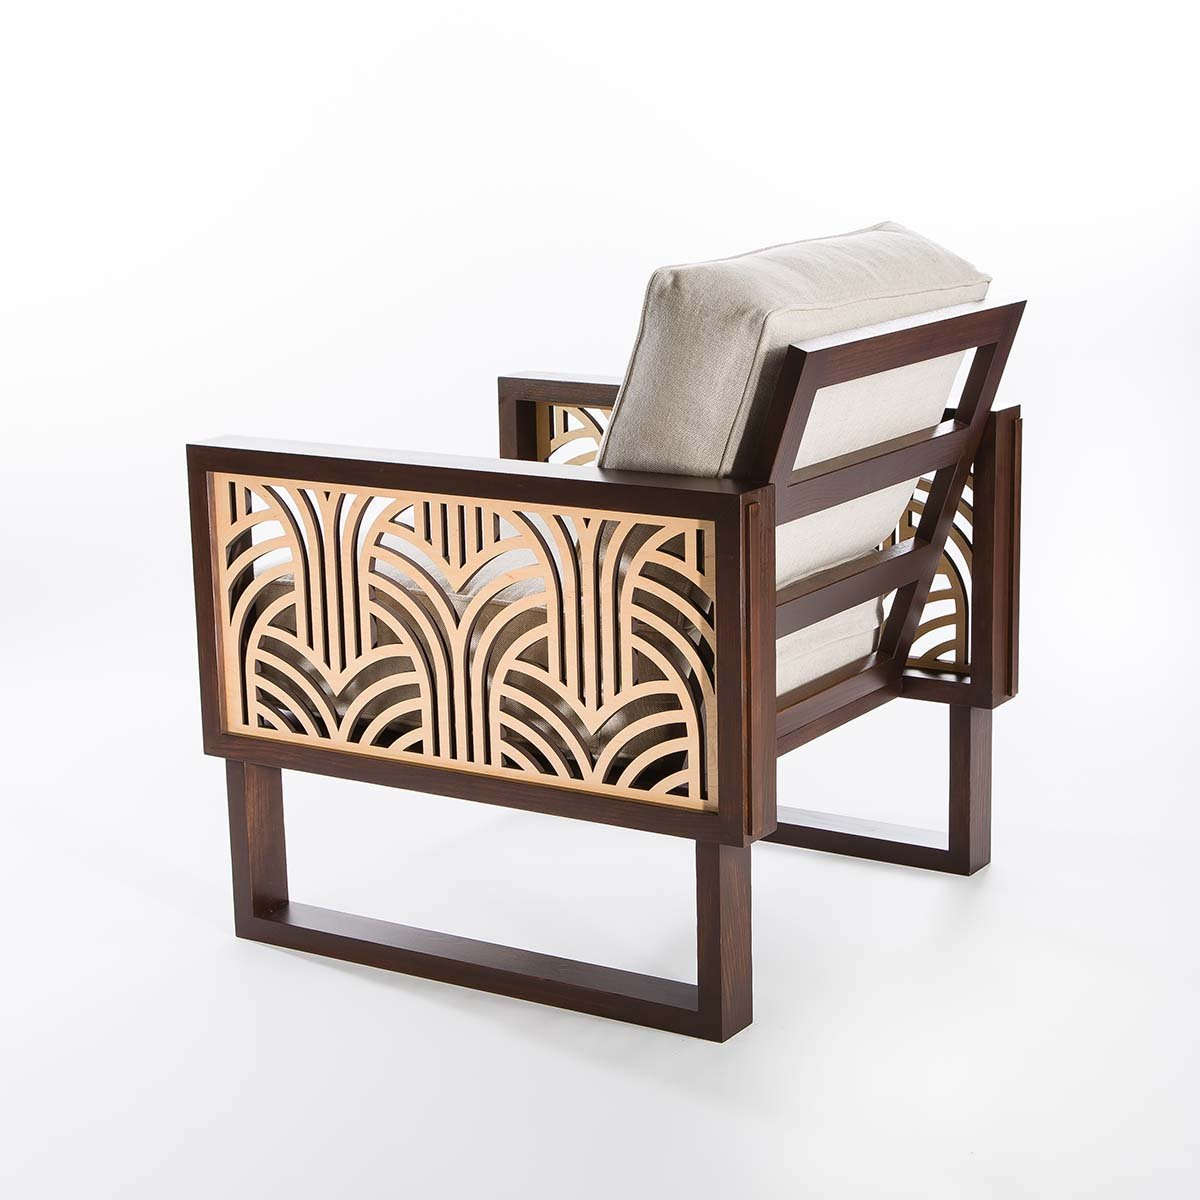 Contempory Chairs: Arm Chair, Lounge Chair